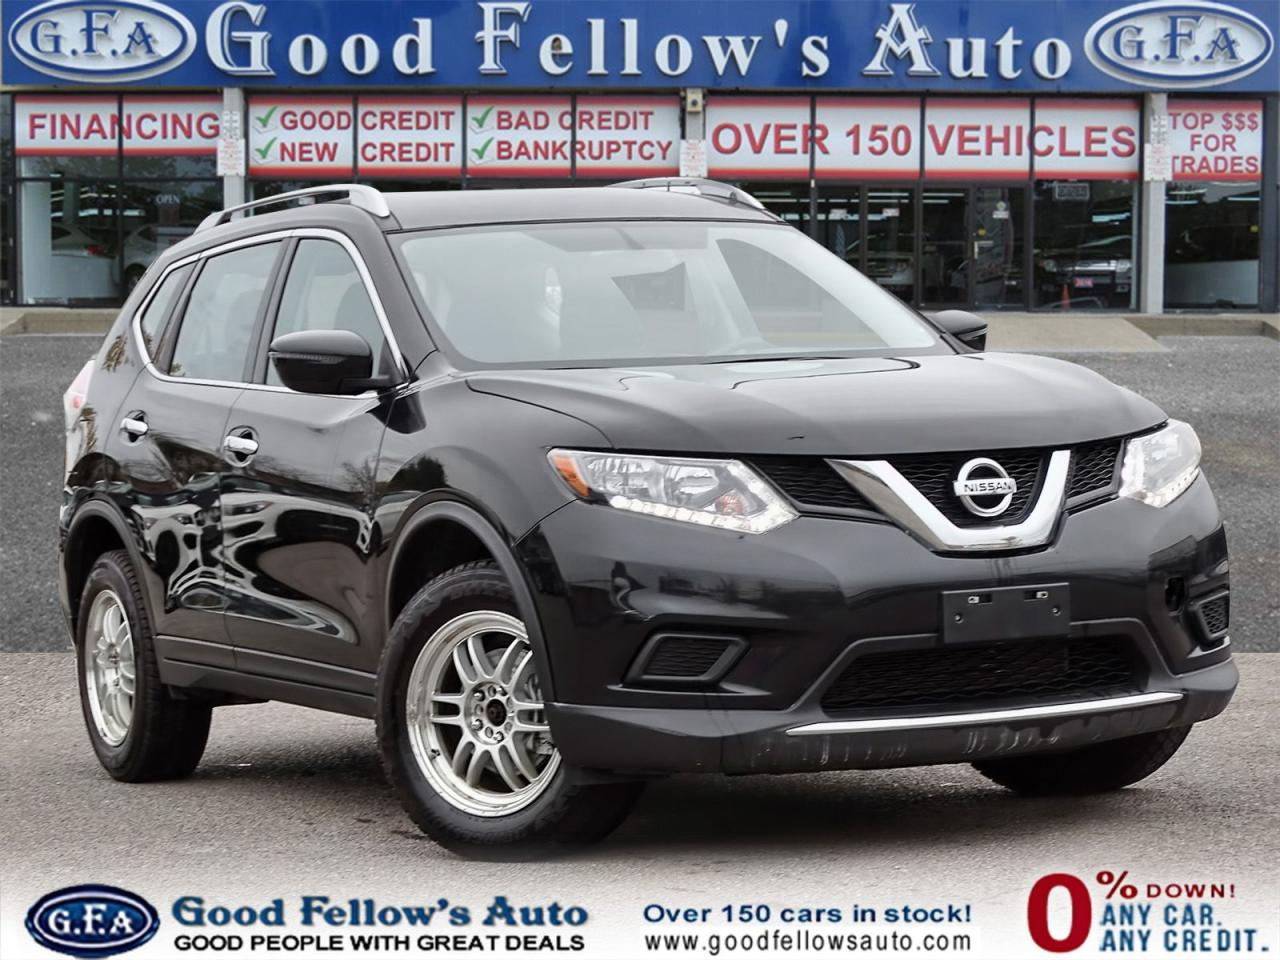 used 2016 Nissan Rogue car, priced at $12,400